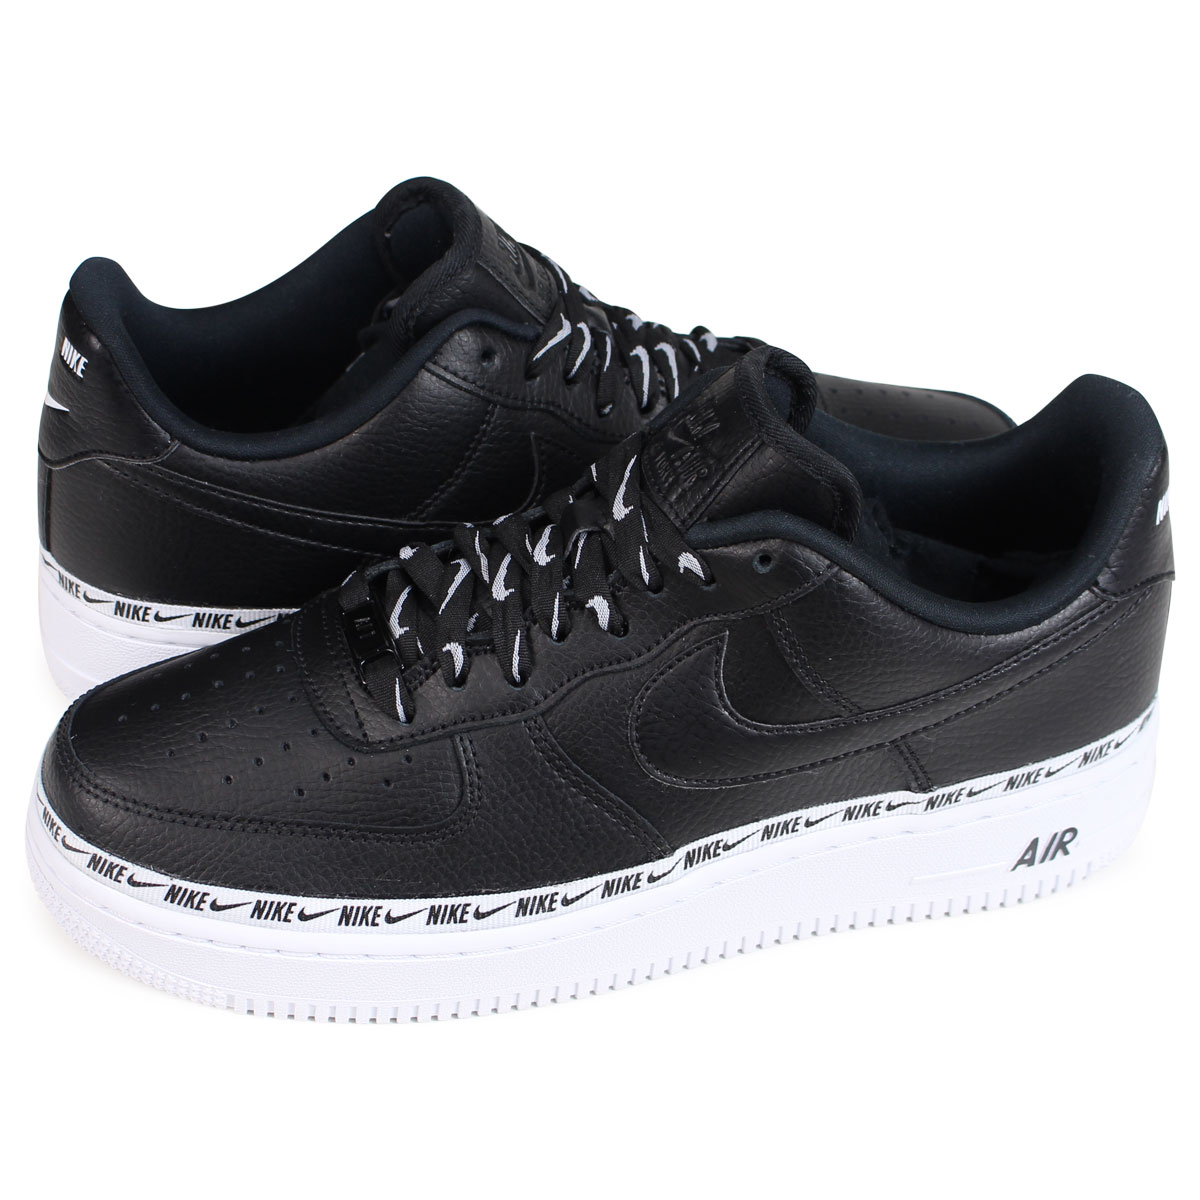 7c715c29af Nike NIKE air force 1 lady's men's sneakers WMNS AIR FORCE 1 07 SE PREMIUM  AH6827-002 black [load planned Shinnyu load in reservation product 11/12 ...